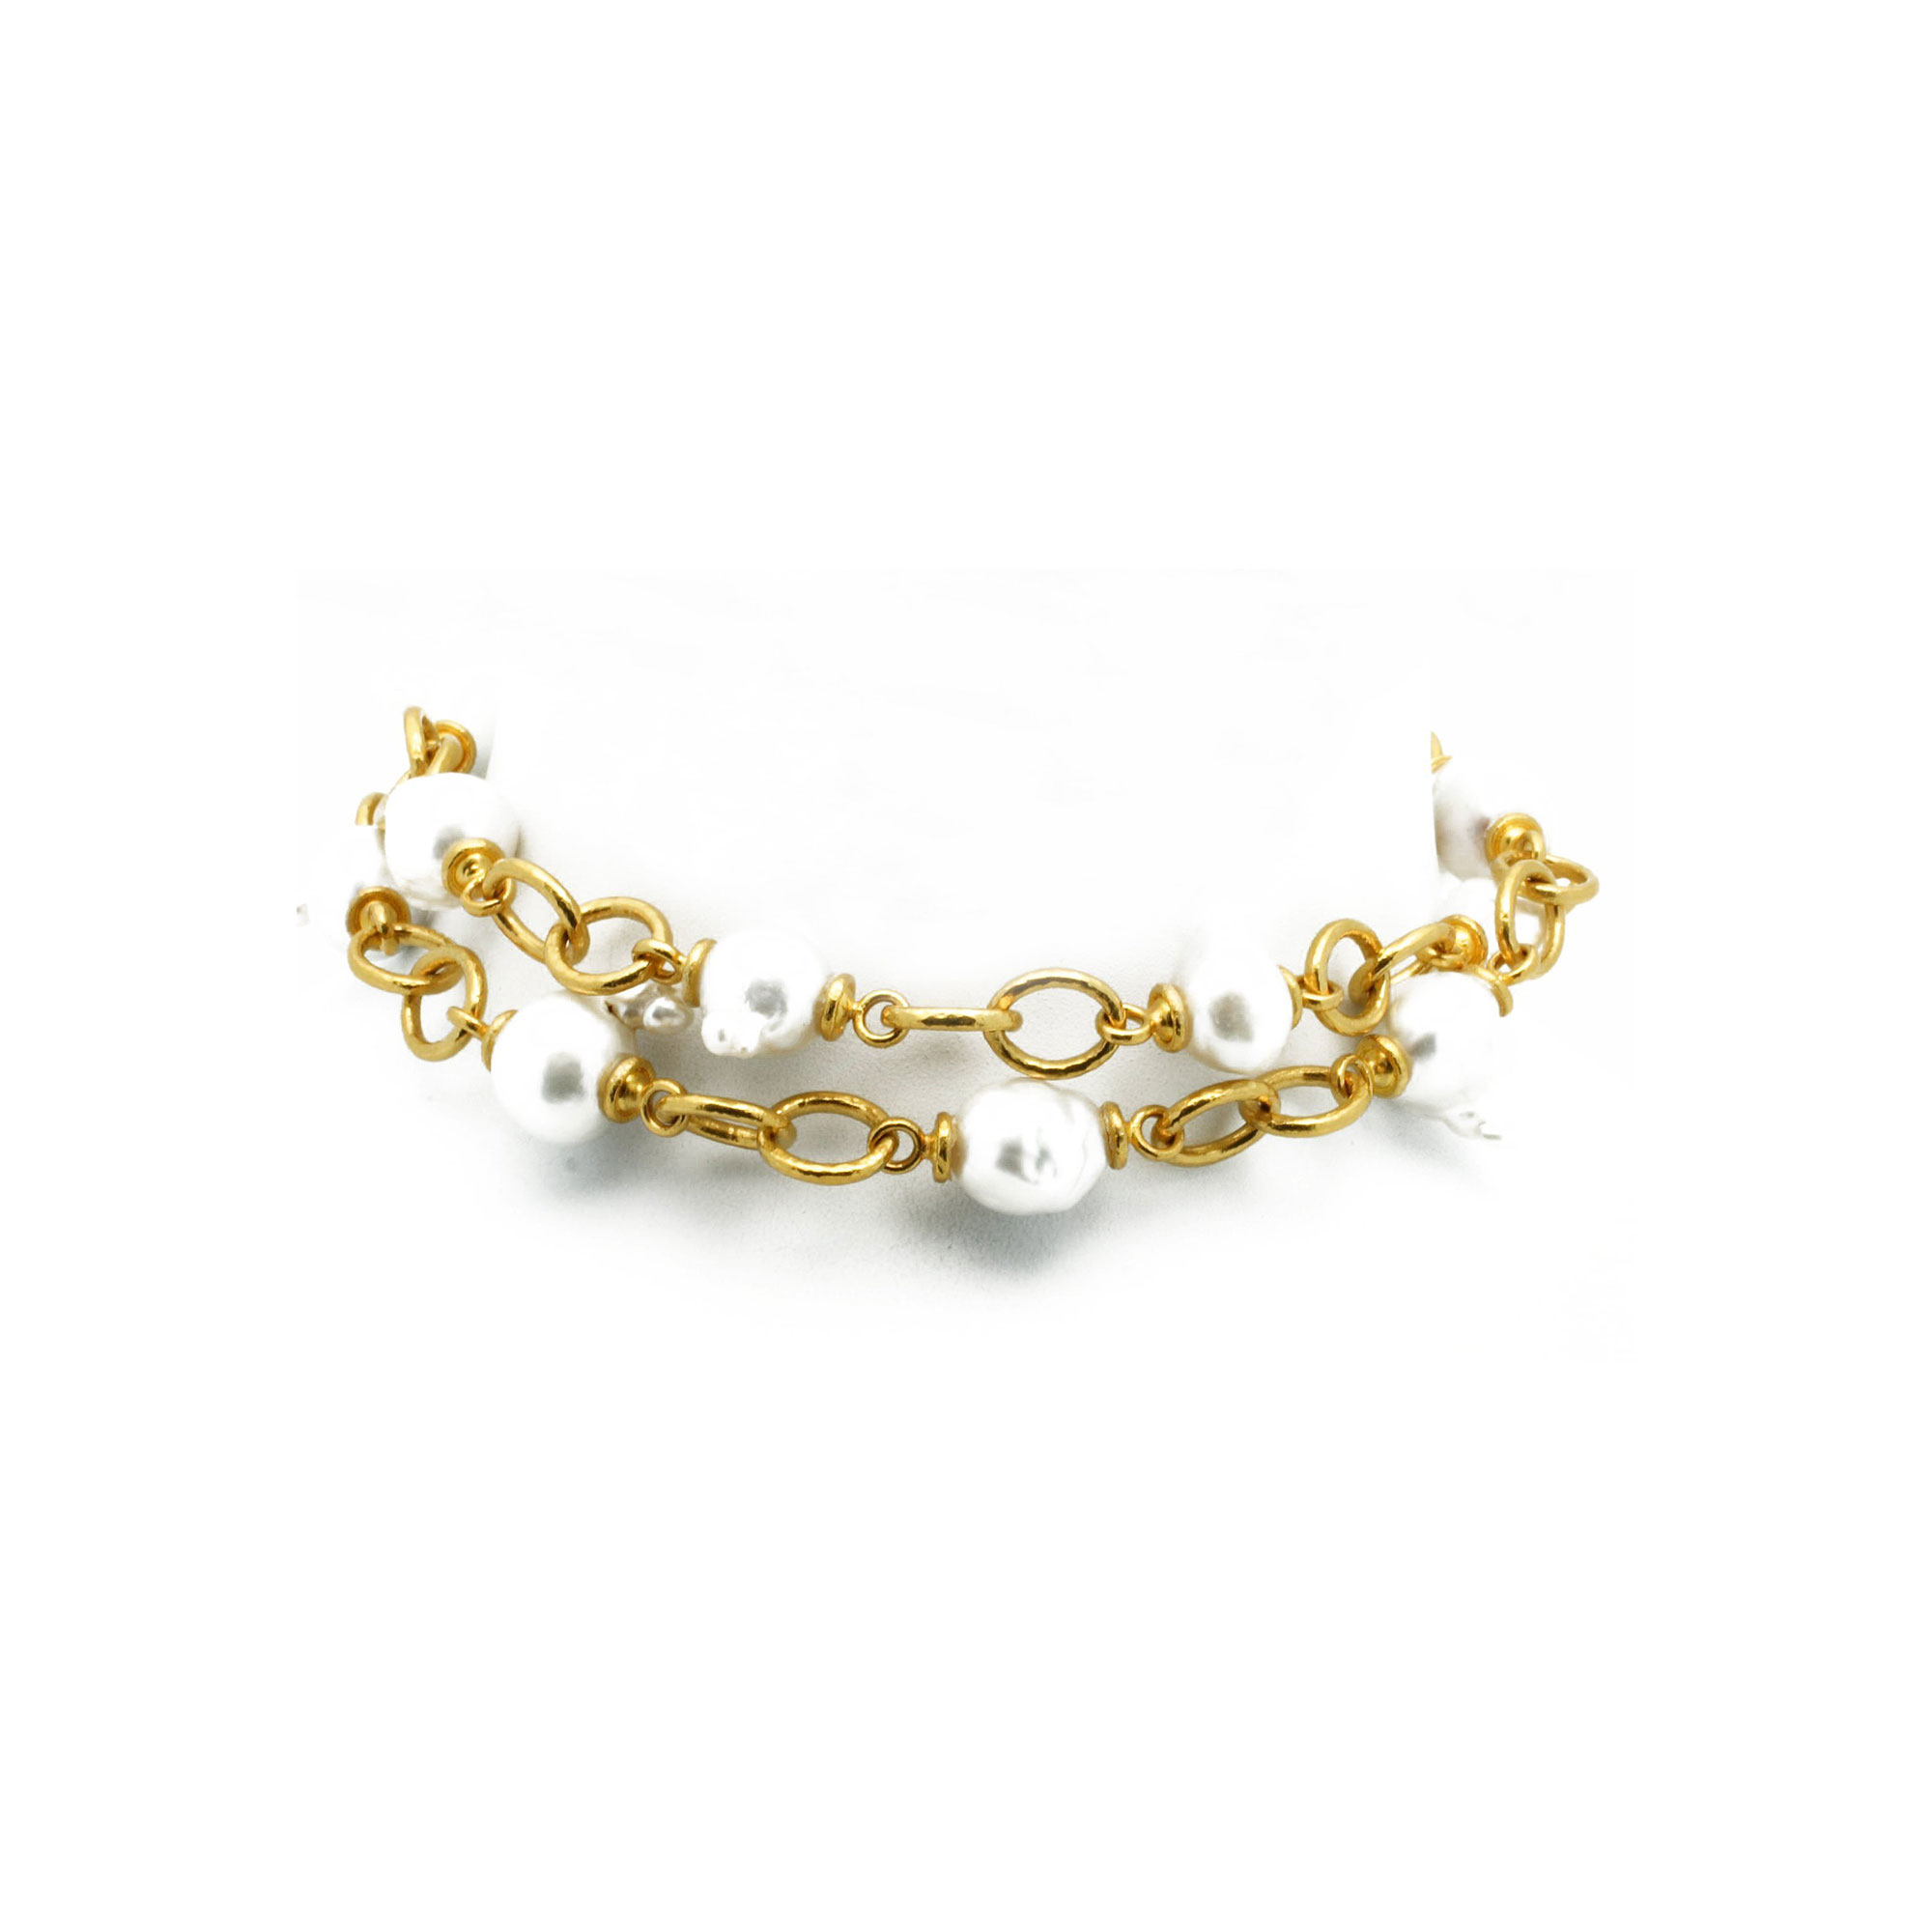 Gurhan 24K Yellow Gold #13 White Pearl Gold Necklace with Stones N220-LE-16SSP13